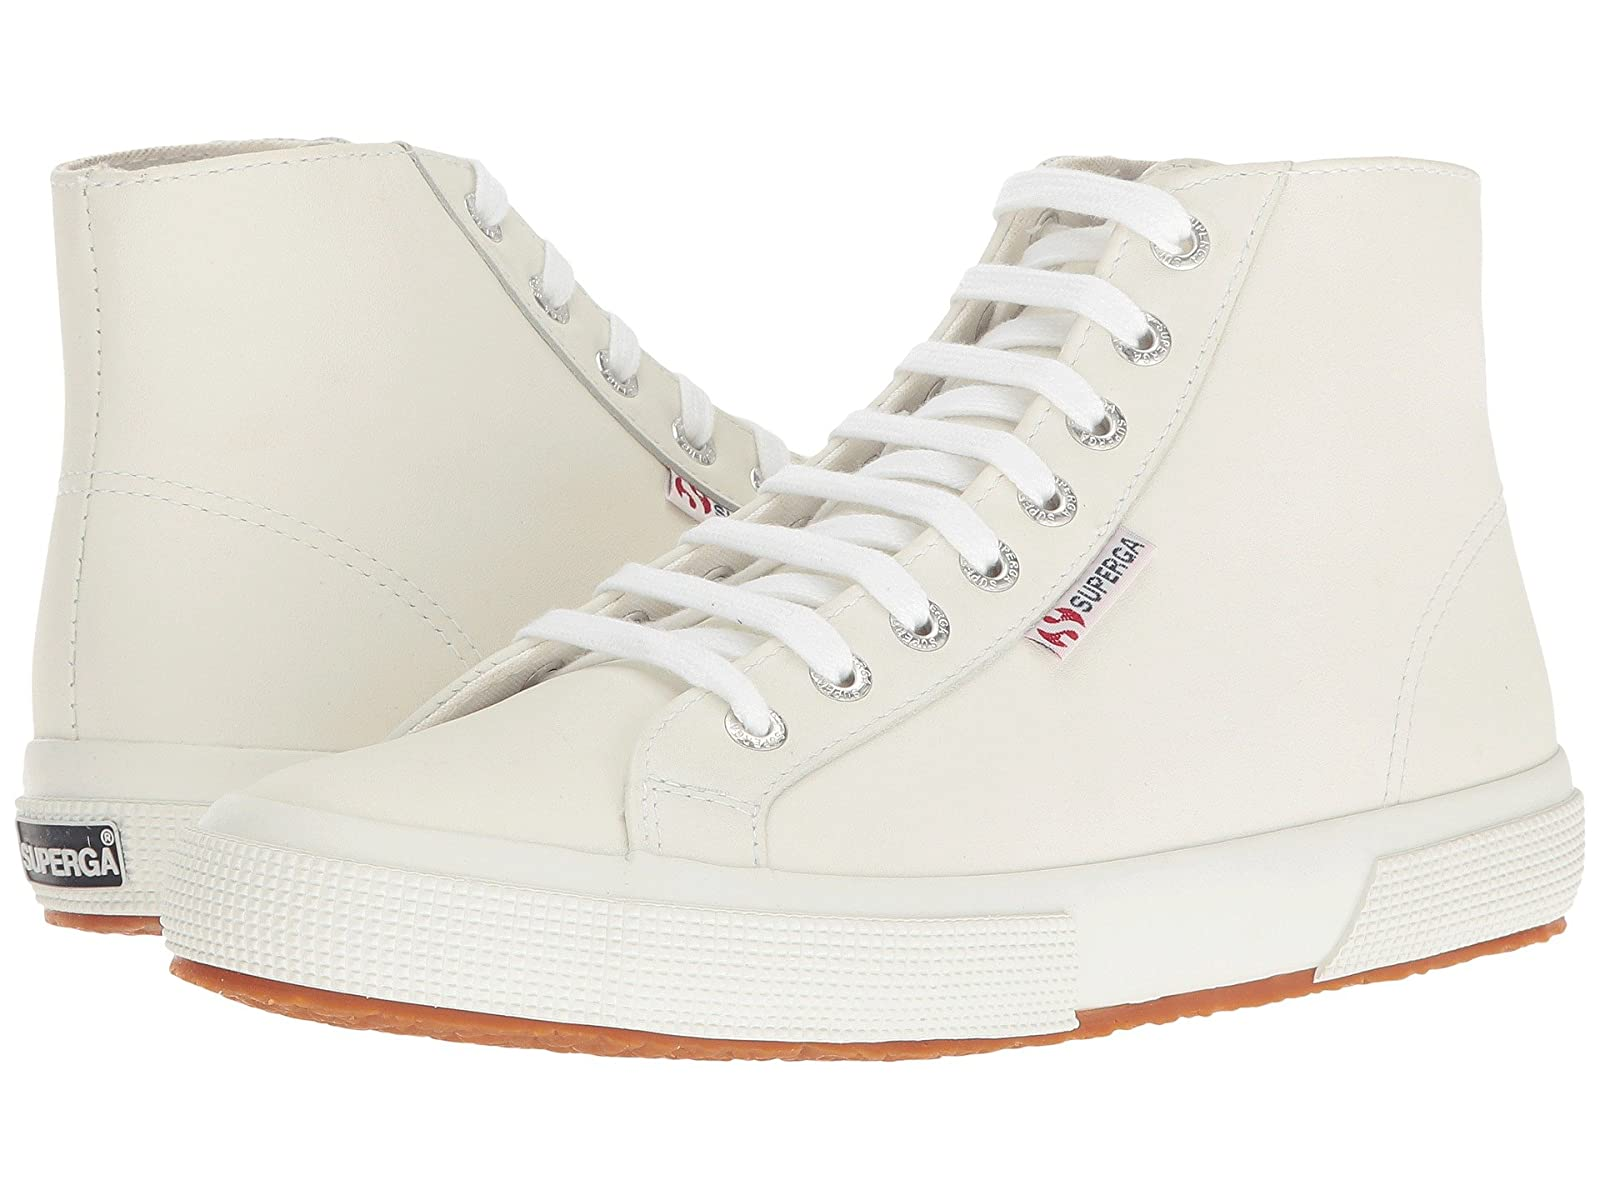 Superga 2795 FGLUCheap and distinctive eye-catching shoes